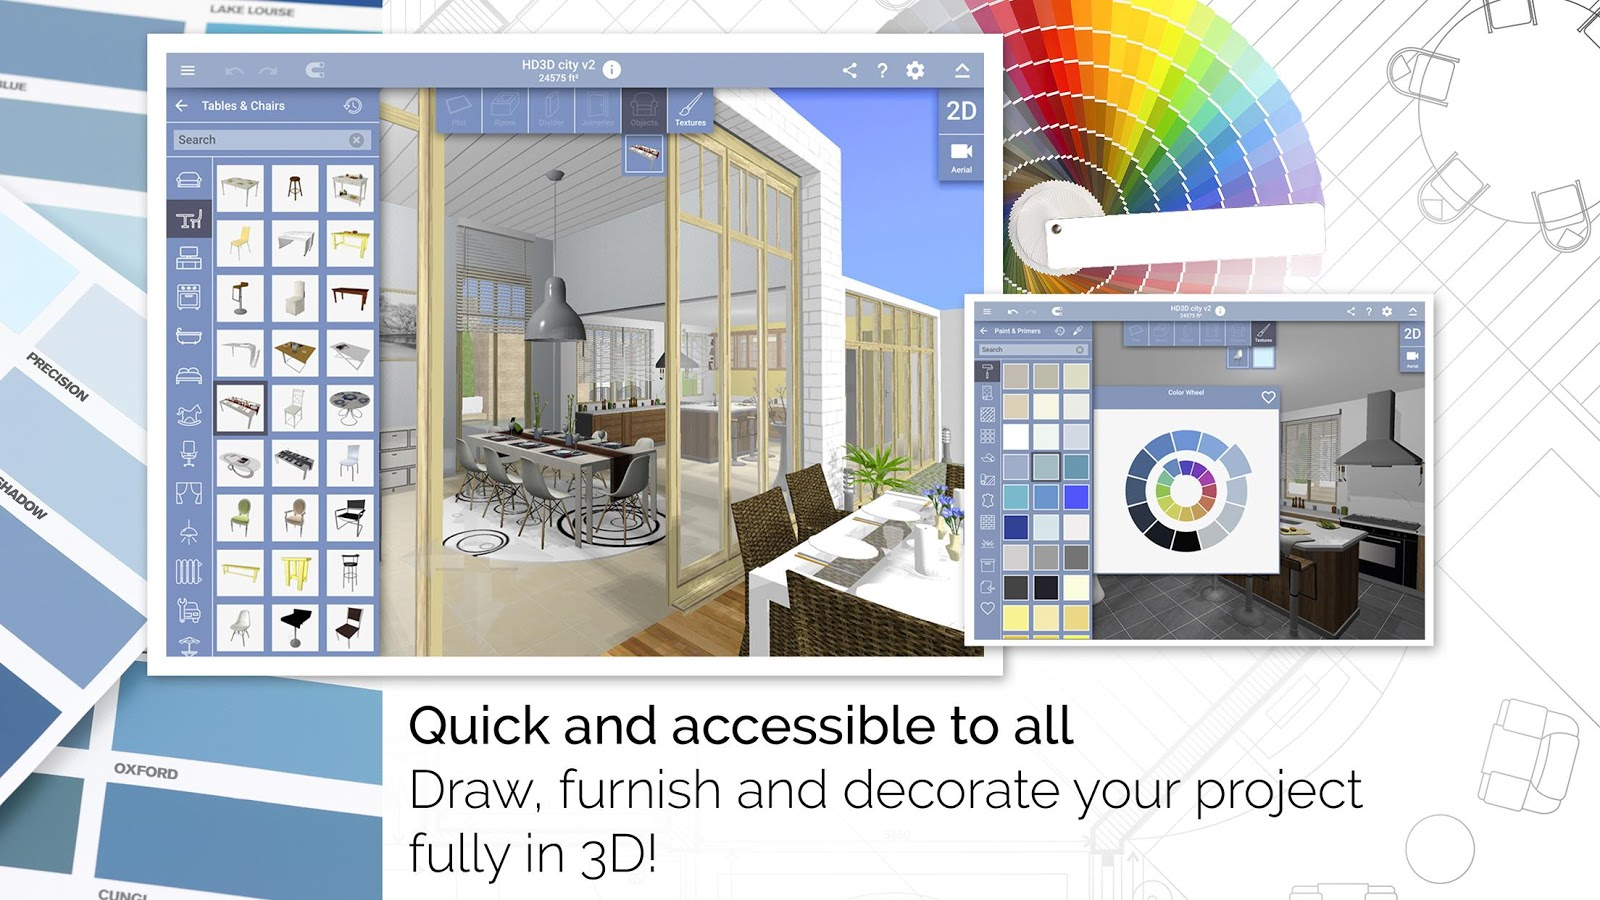 Home design 3d freemium android apps on google play for Plan 3d online home design free